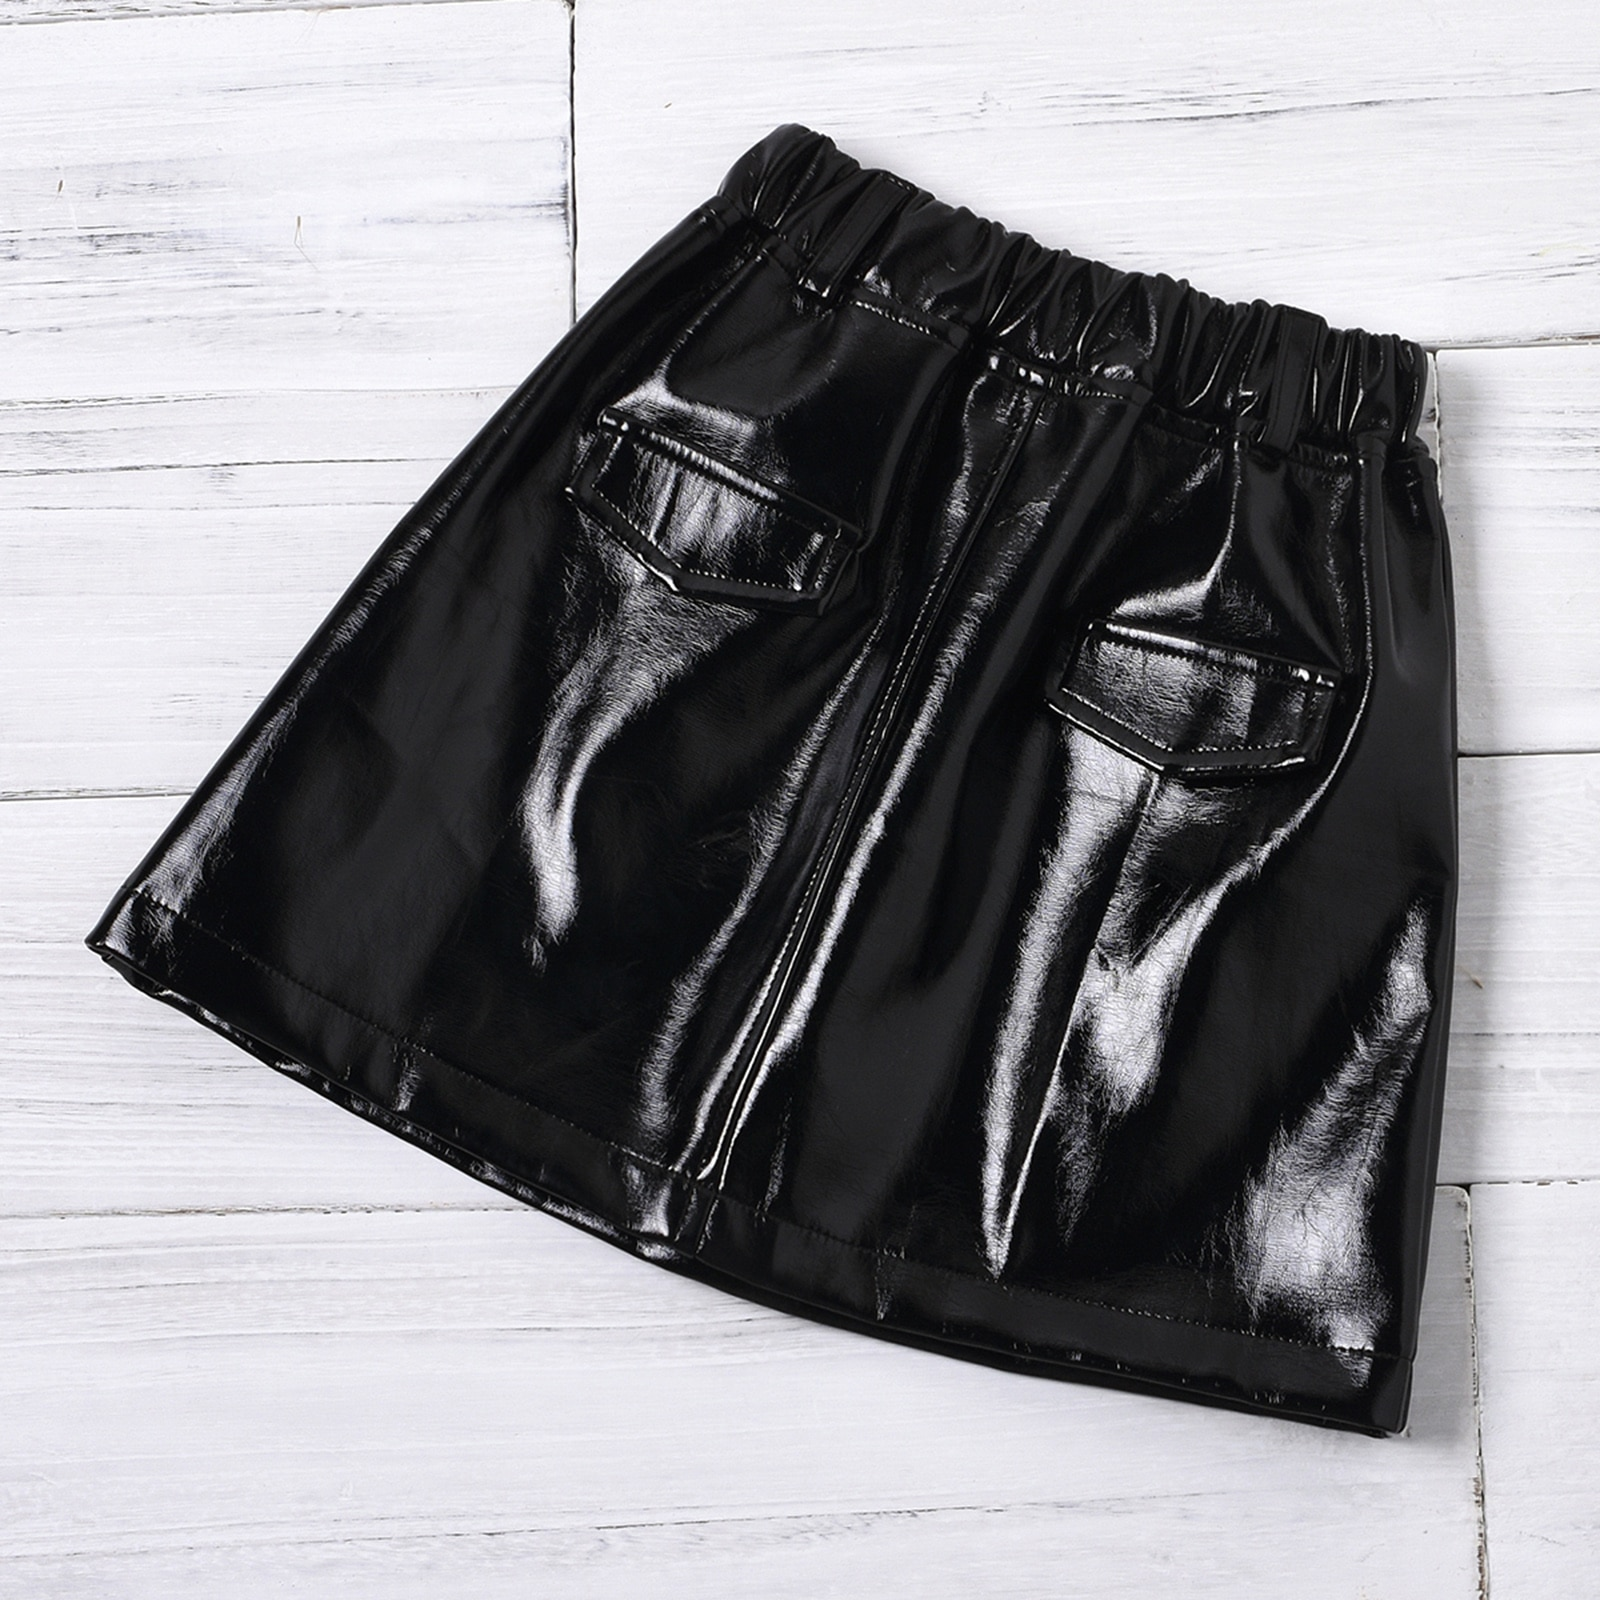 Купить с кэшбэком Girls Skirt Two Piece Suit Fashion Solid Color Boat Neck Lantern Sleeve Tops and Leather Short Skirt